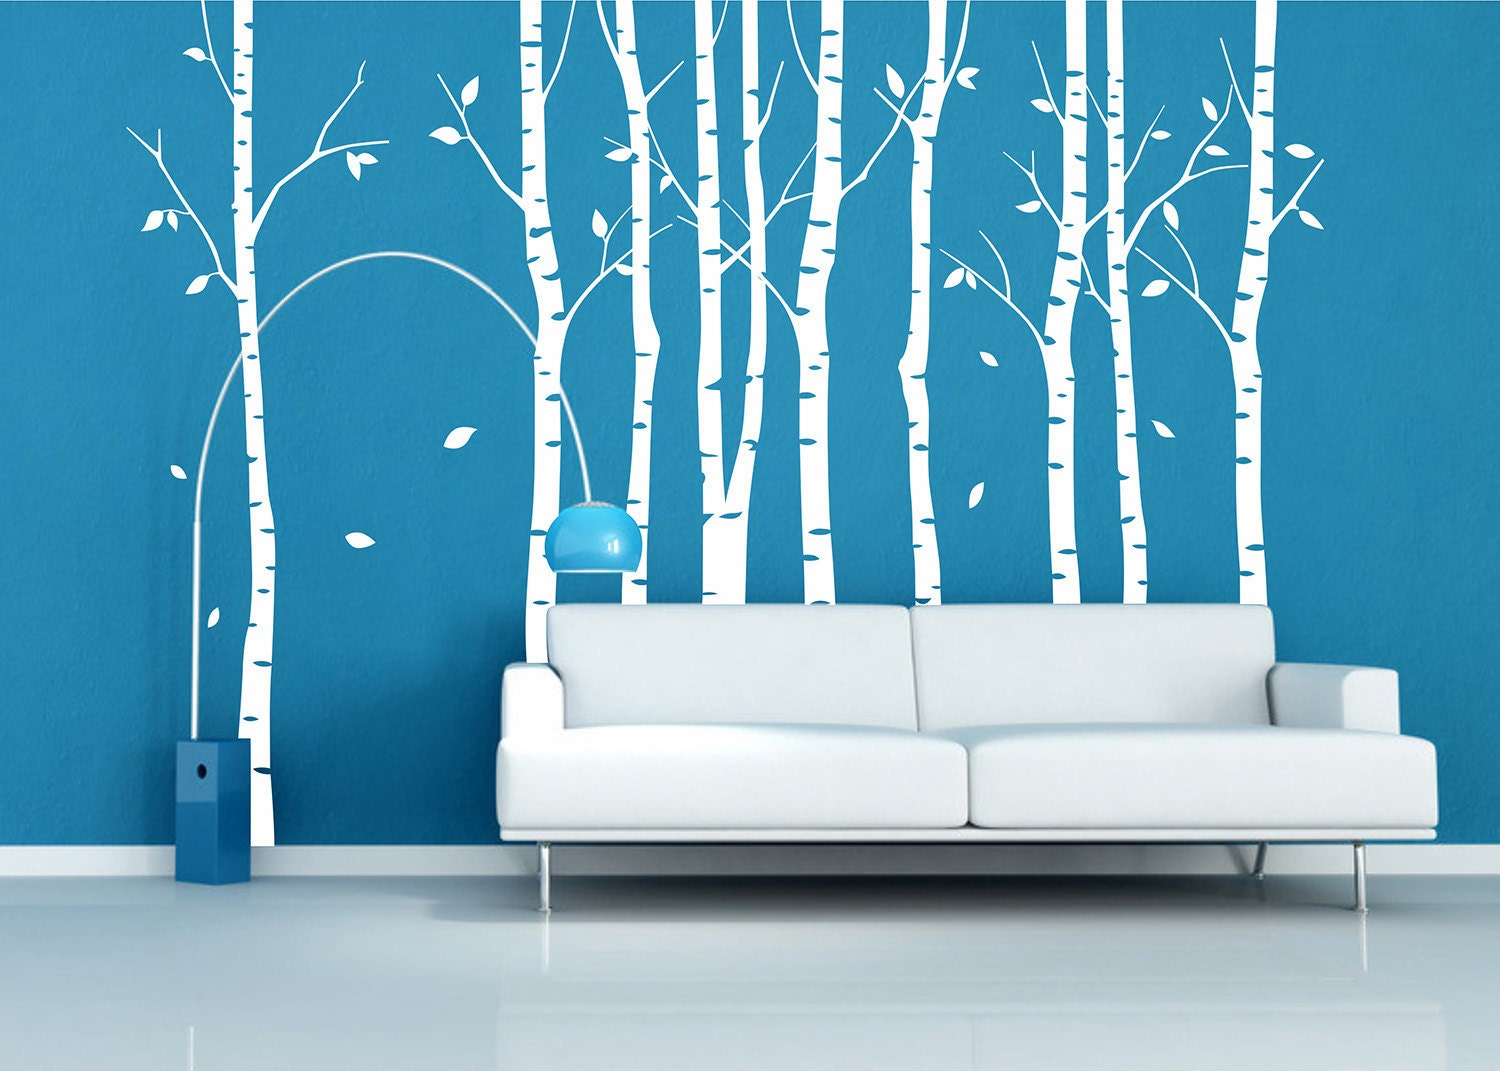 Tree wall decal 9 birch trees decals forest wall by for Birch trees mural